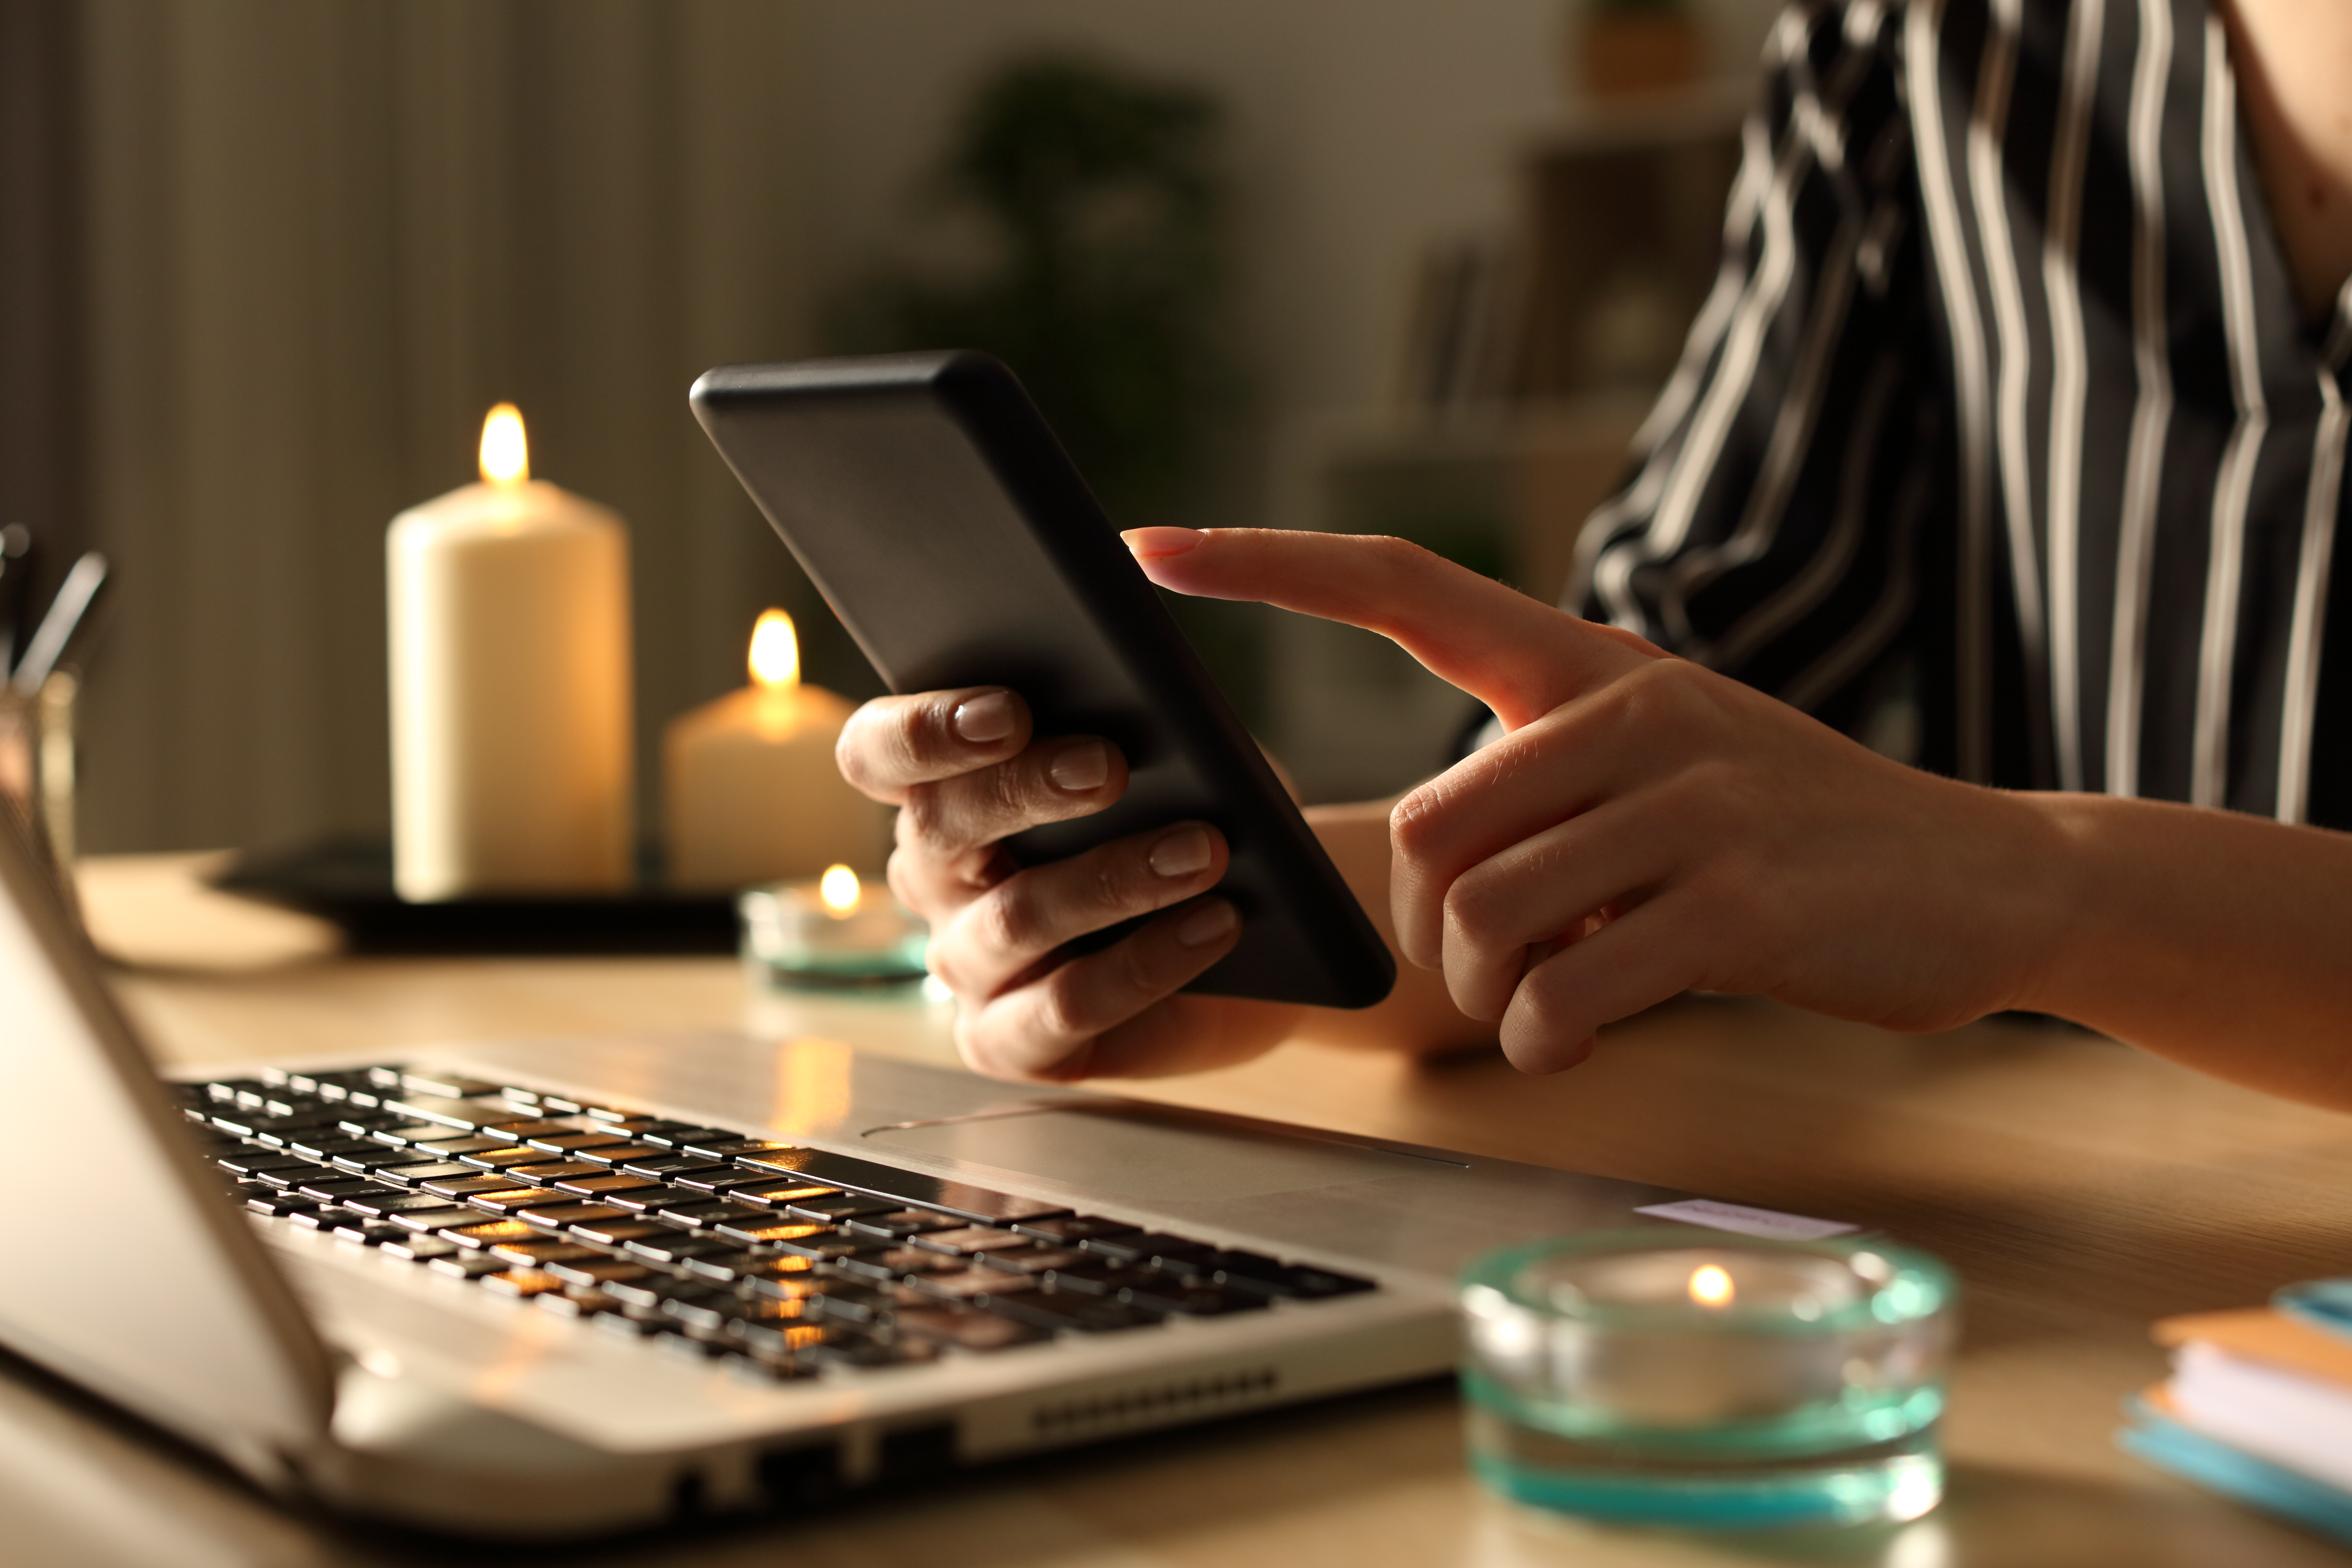 Girl hands using phone on power outage with candles